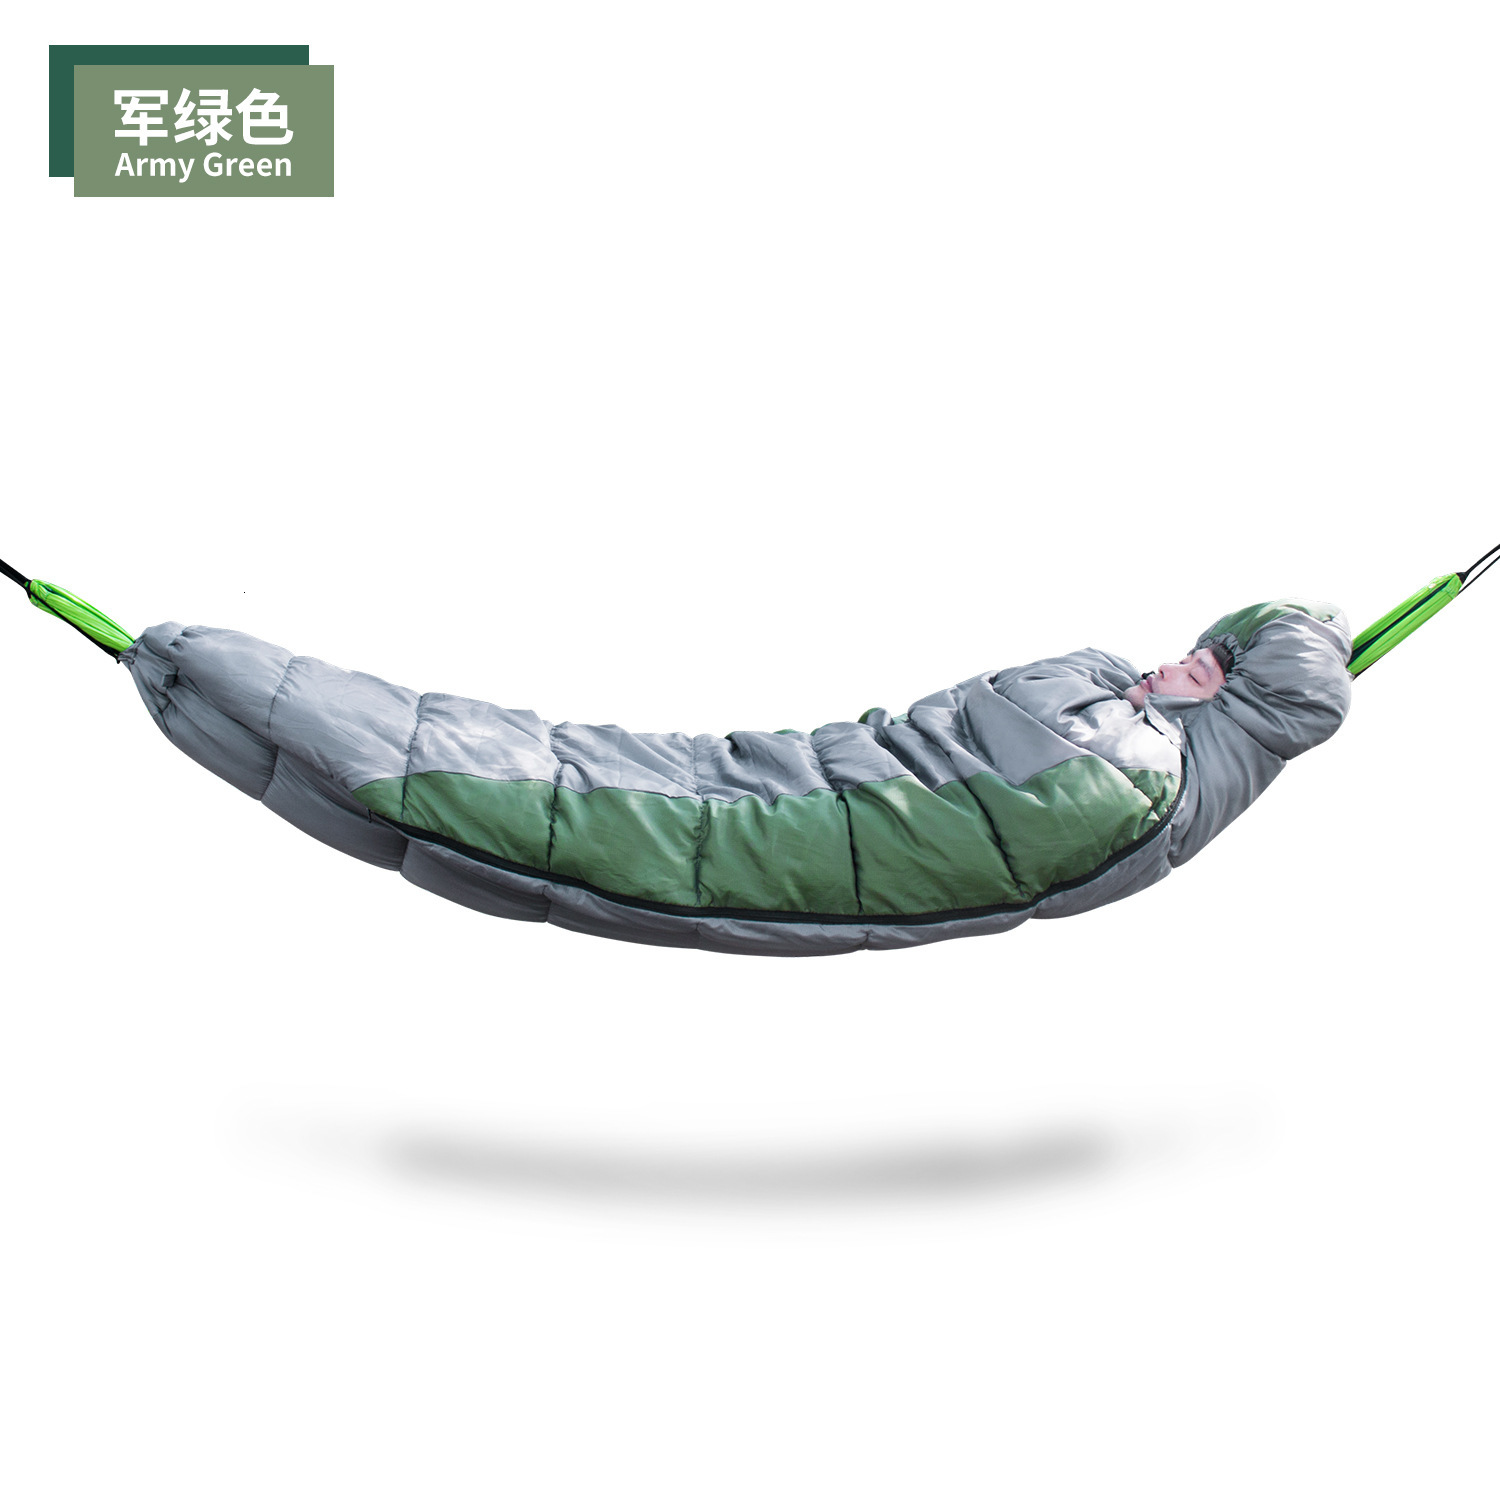 Multipurpose Hammock Insulation Cover Sleeping Bag Camping Keep Warm Outdoors Winter Pure Cotton Travel Sleeping Bag